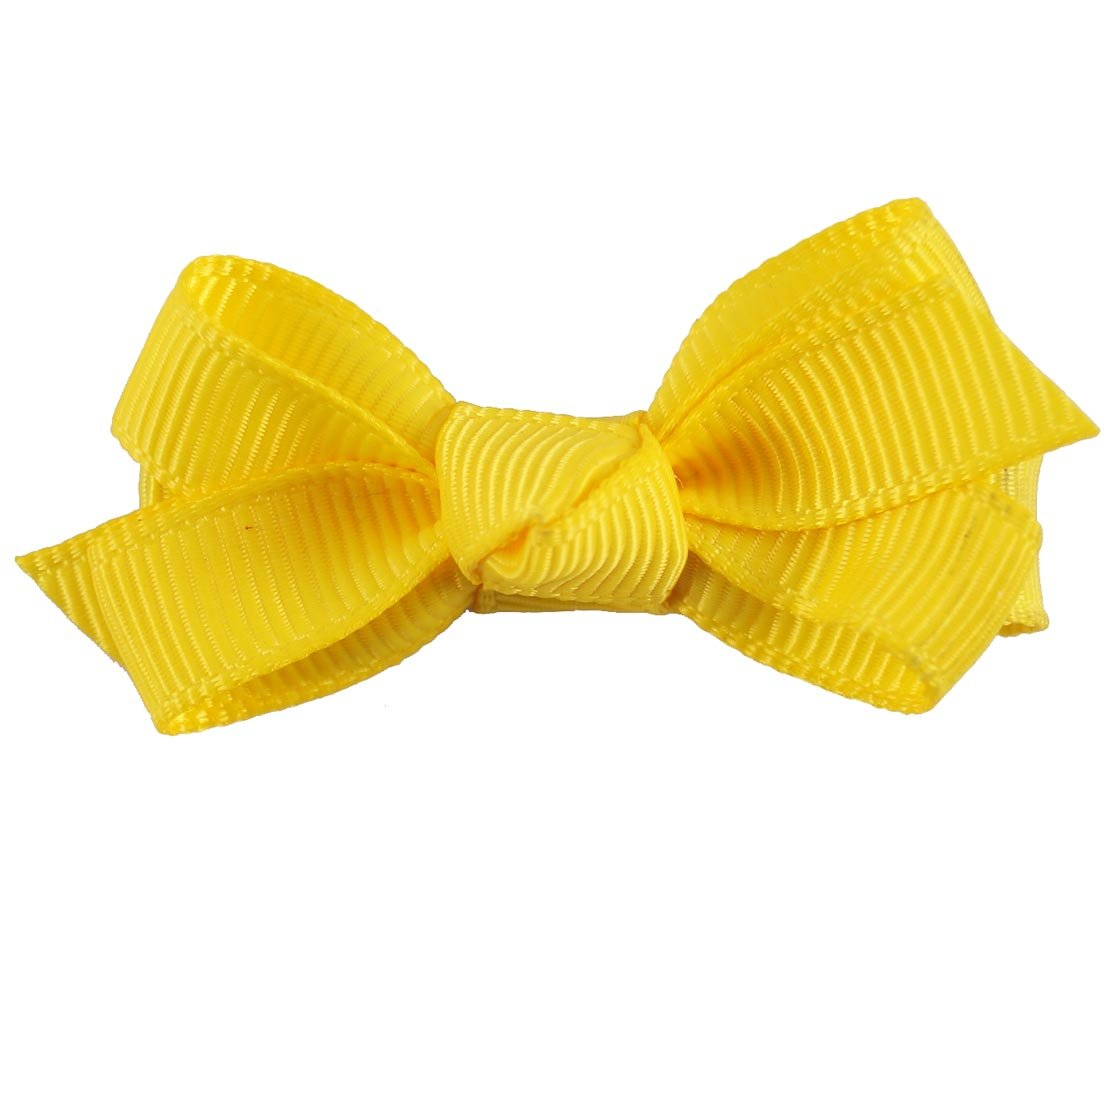 CN Boutique Baby Girls Hair Bows Alligator Clips Grosgrain Ribbon Barrettes For Teens Kids Toddlers 15 Colors 30pcs by C.N. (Image #8)